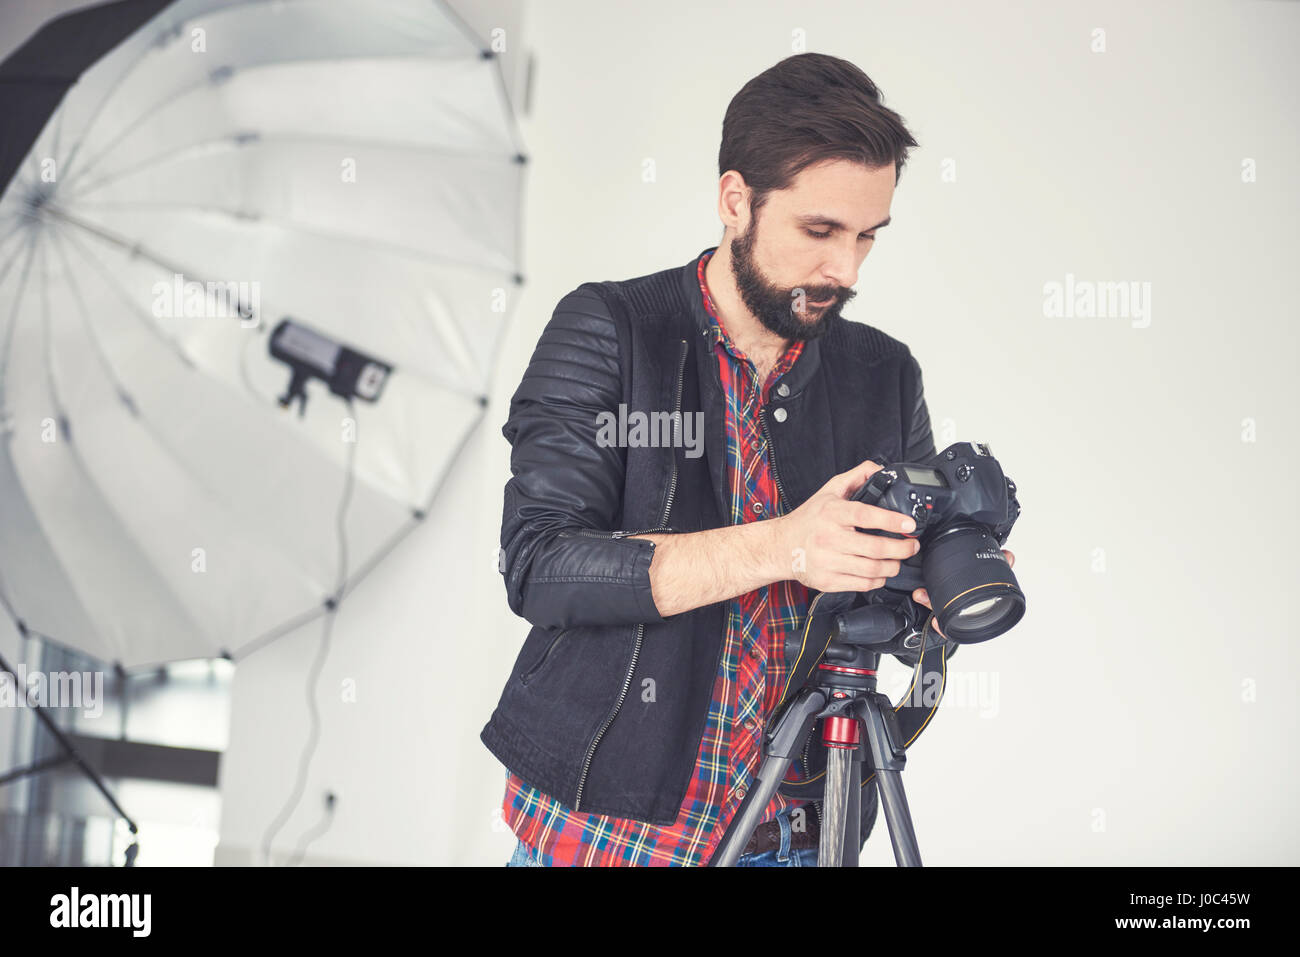 Male photographer reviewing studio photo shoot on digital slr - Stock Image